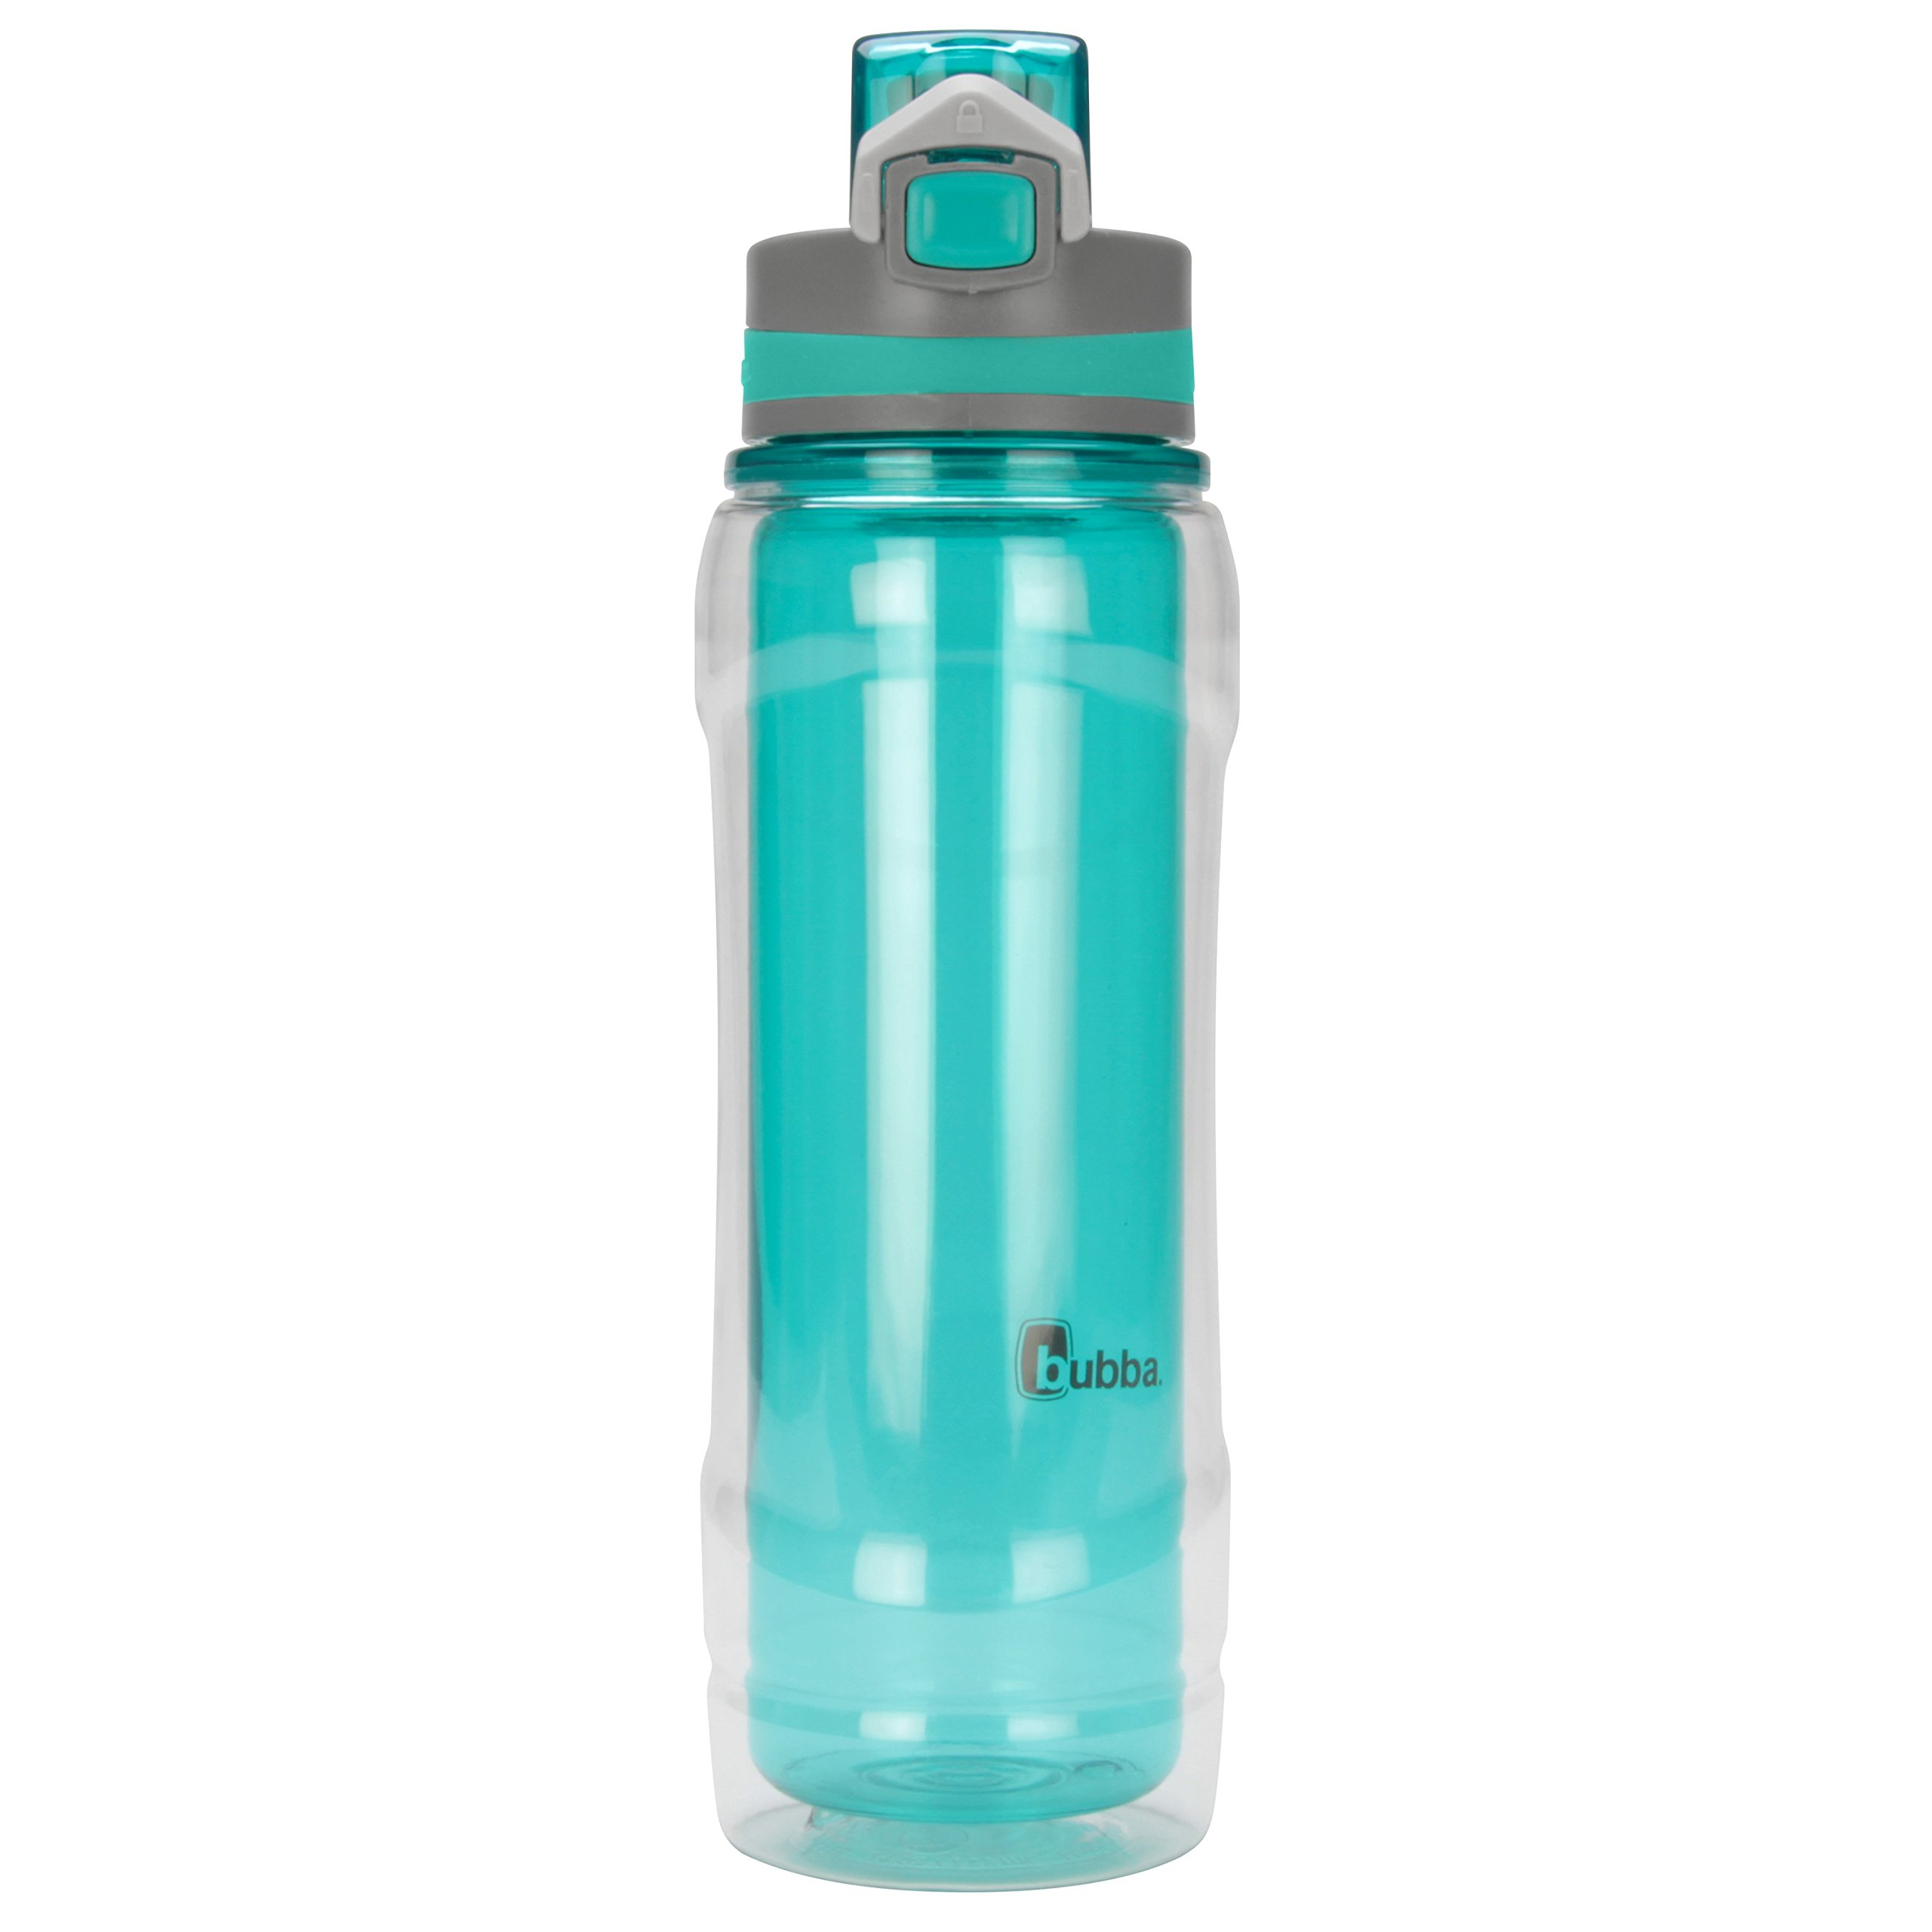 Bubba Flo Duo Refresh Insulated Water Bottle, 24 oz, Island Teal